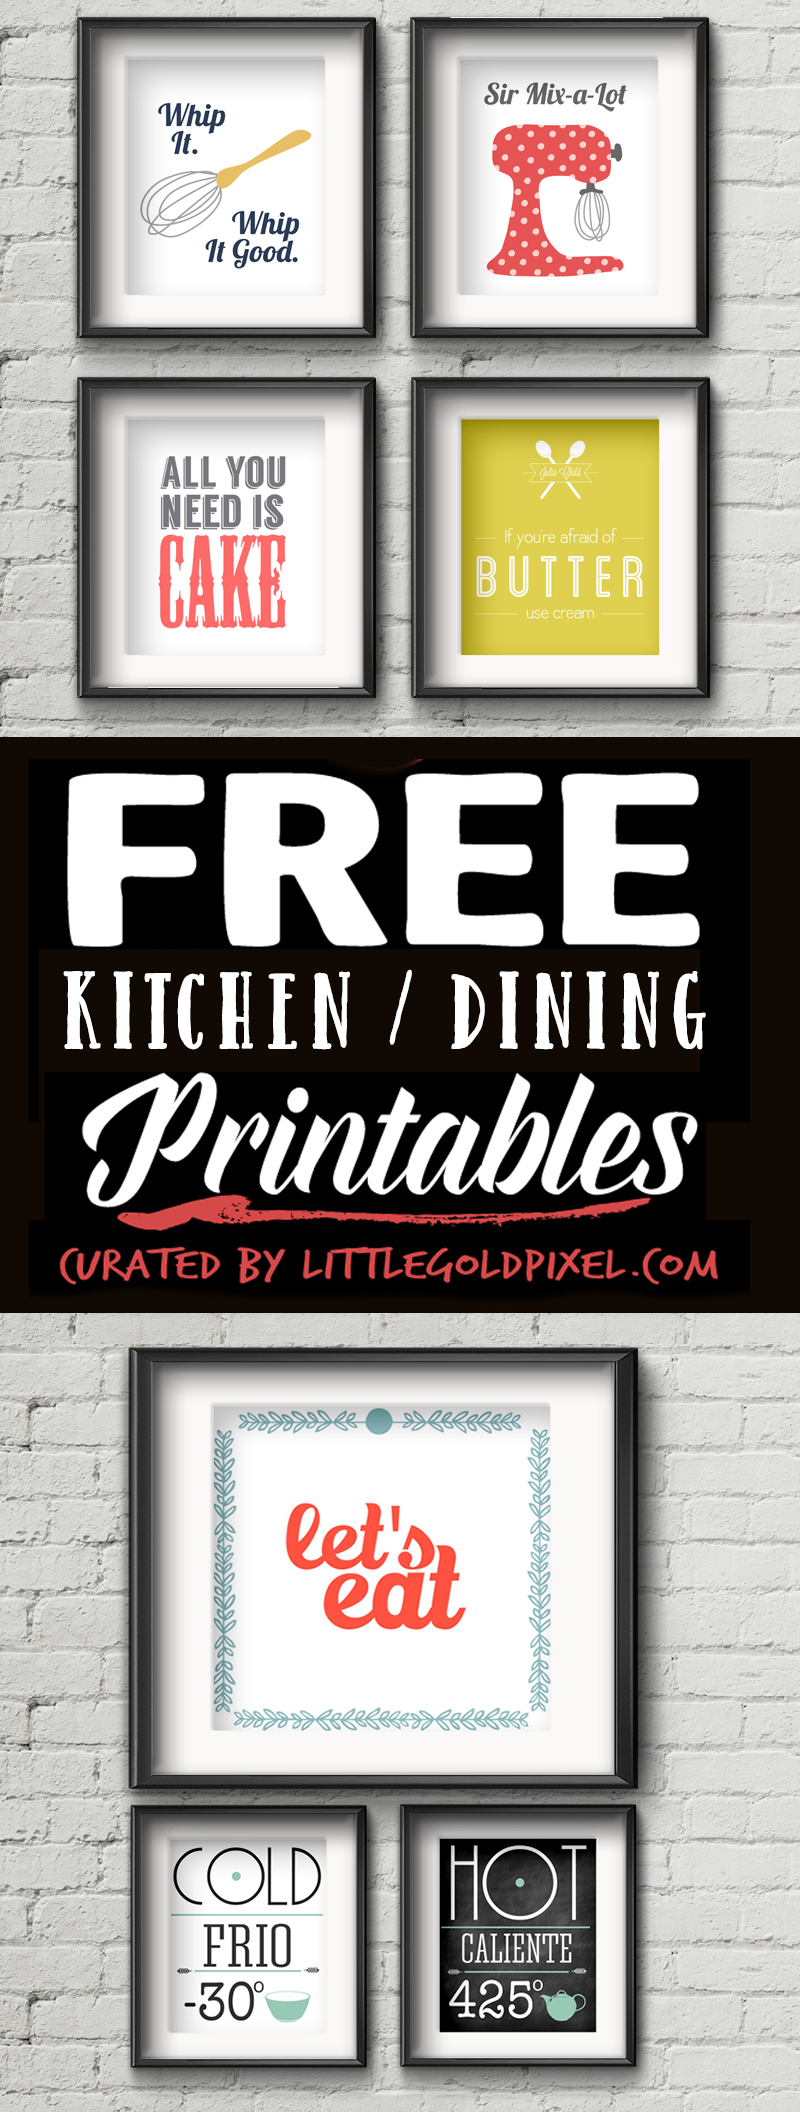 kitchen free printables little gold pixel - Kitchen Wall Art